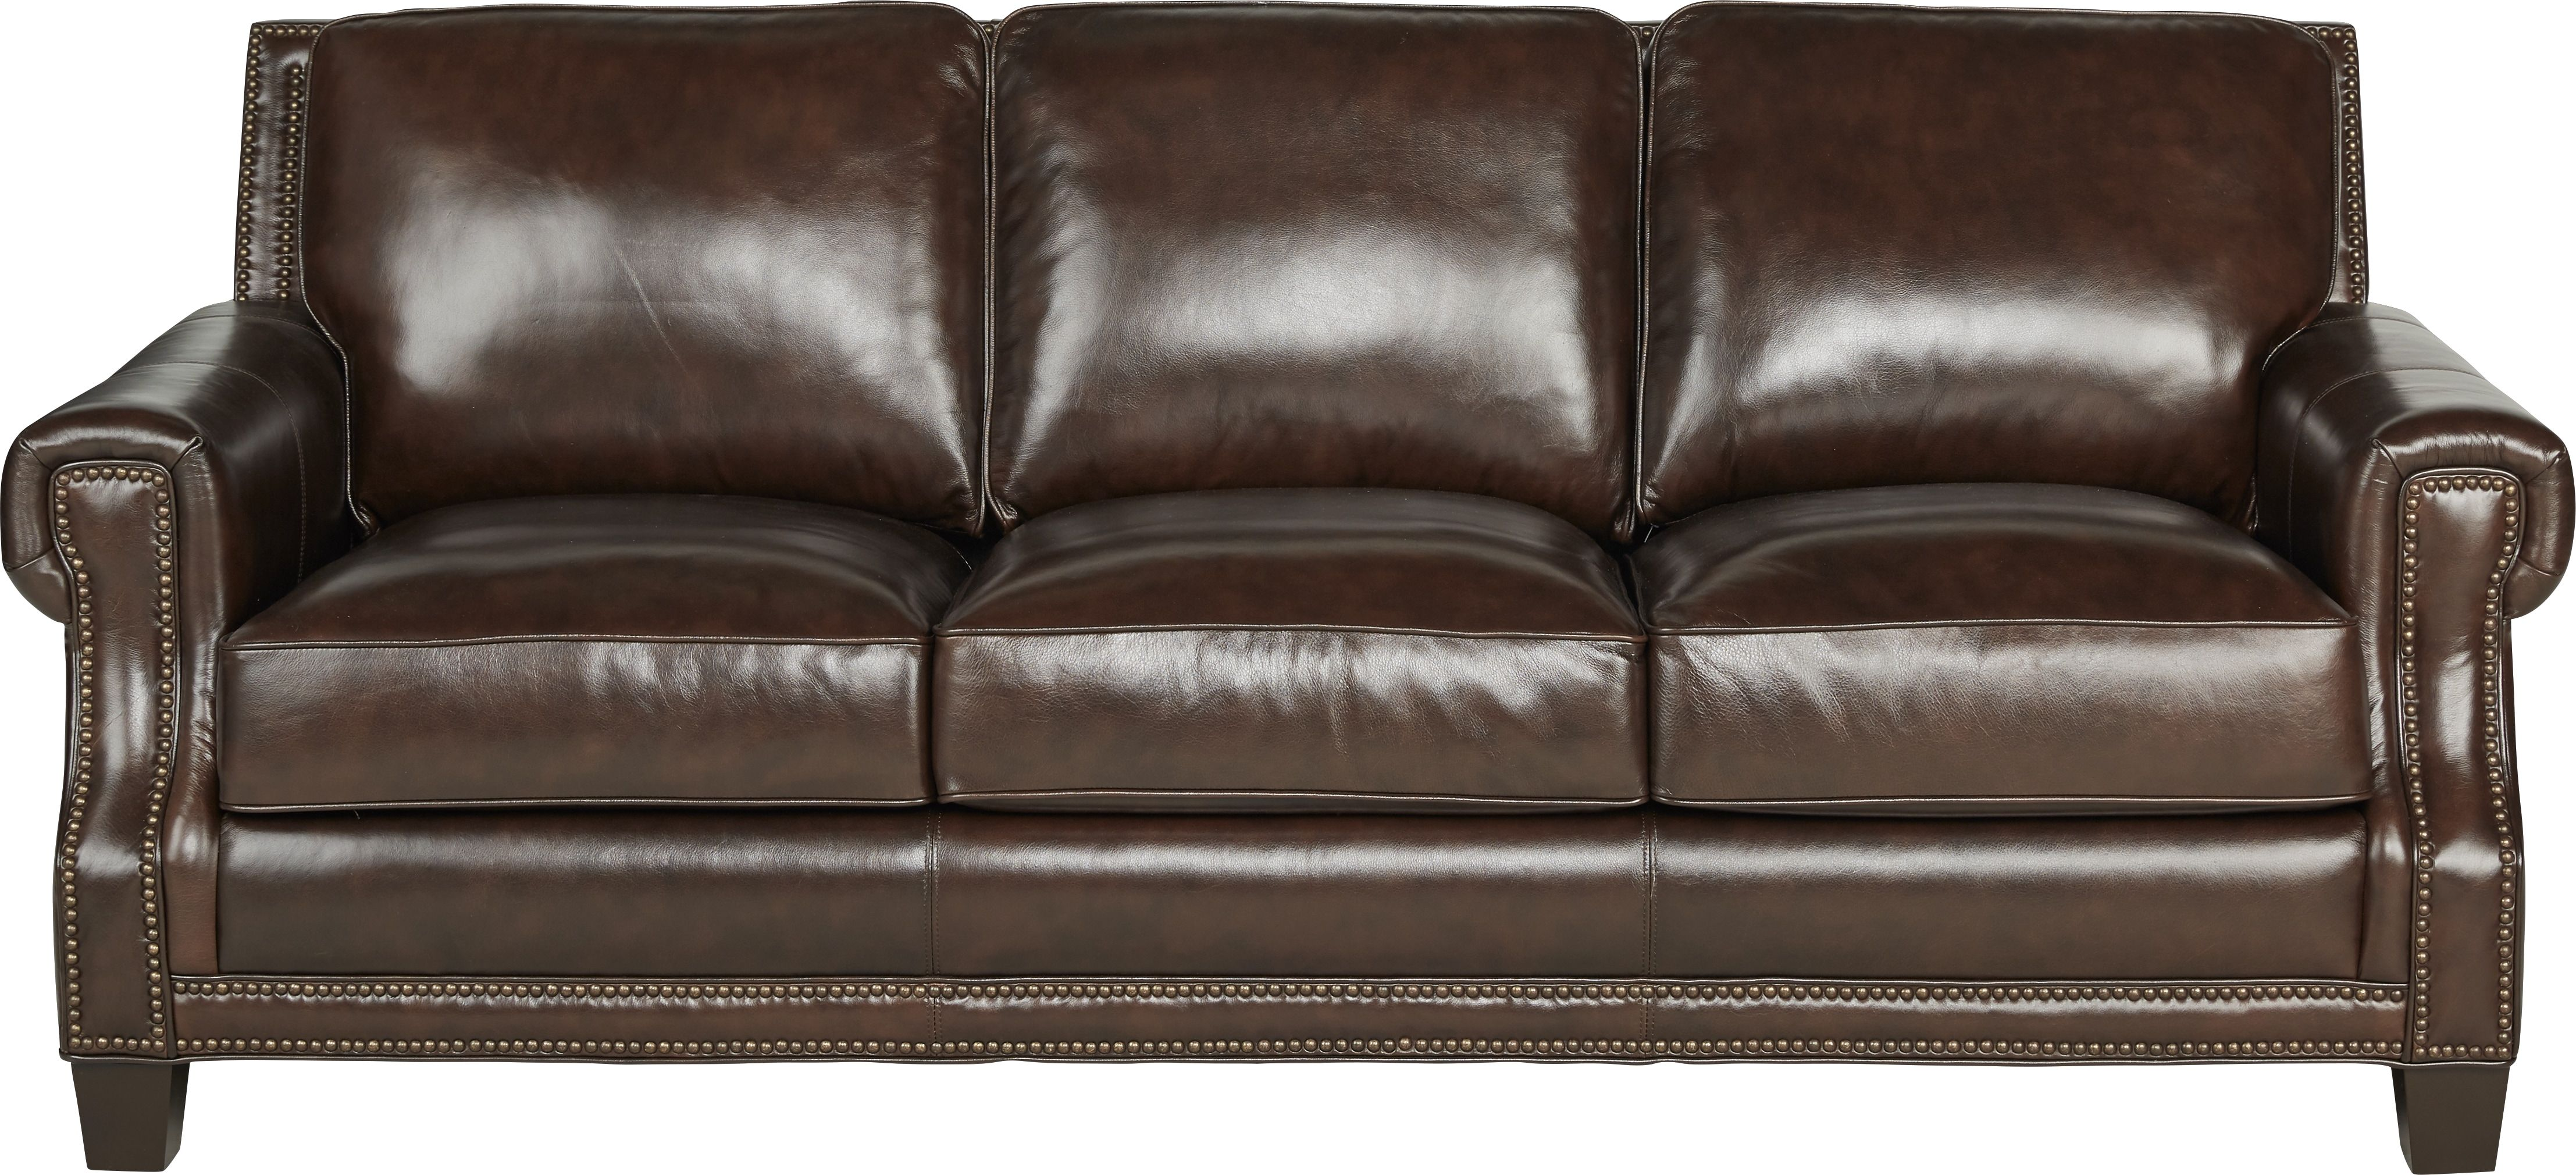 Astounding Vicenza Chocolate Leather Sofa In 2019 Sofa Leather Sofa Andrewgaddart Wooden Chair Designs For Living Room Andrewgaddartcom